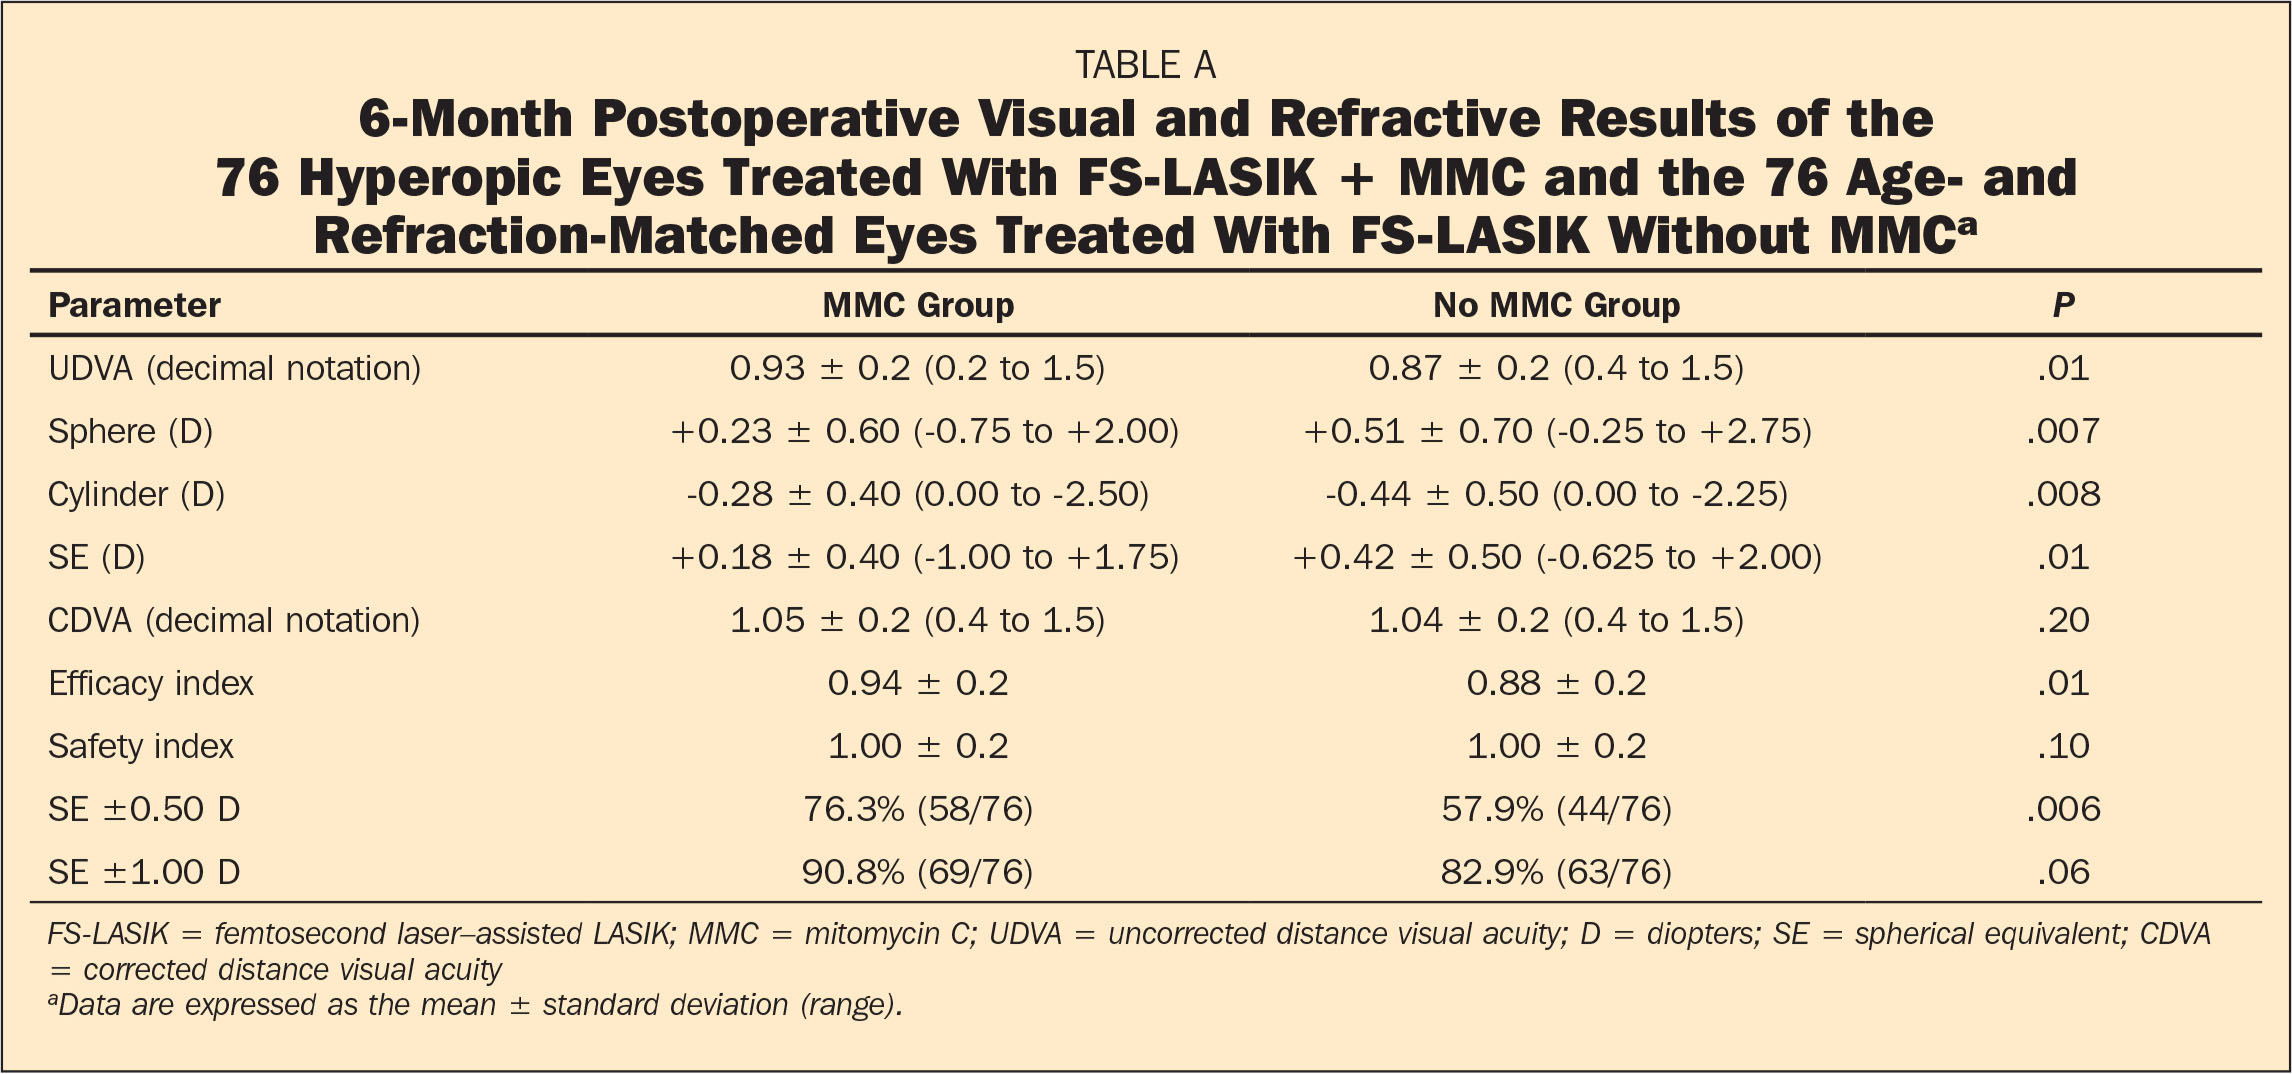 6-Month Postoperative Visual and Refractive Results of the 76 Hyperopic Eyes Treated With FS-LASIK + MMC and the 76 Age- and Refraction-Matched Eyes Treated With FS-LASIK Without MMCa